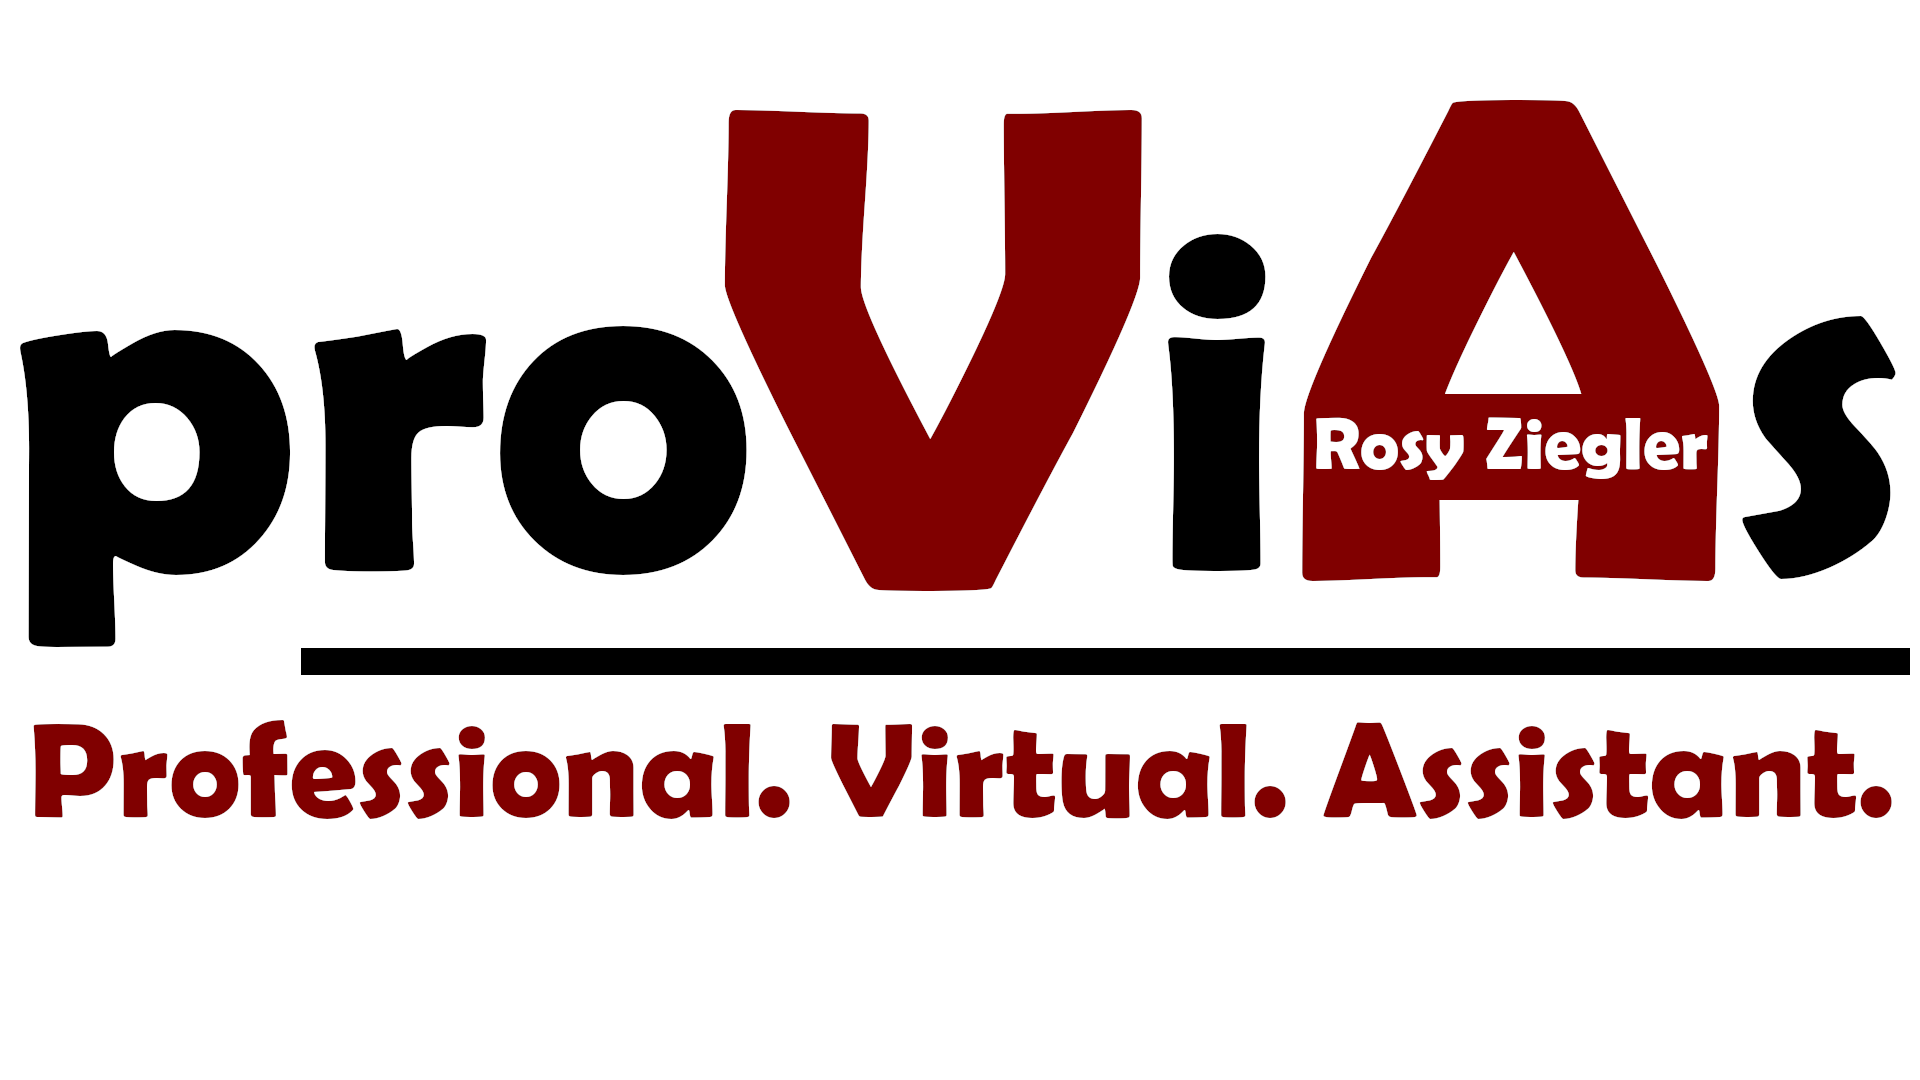 proViAs – Professional. Virtual. Assistant.